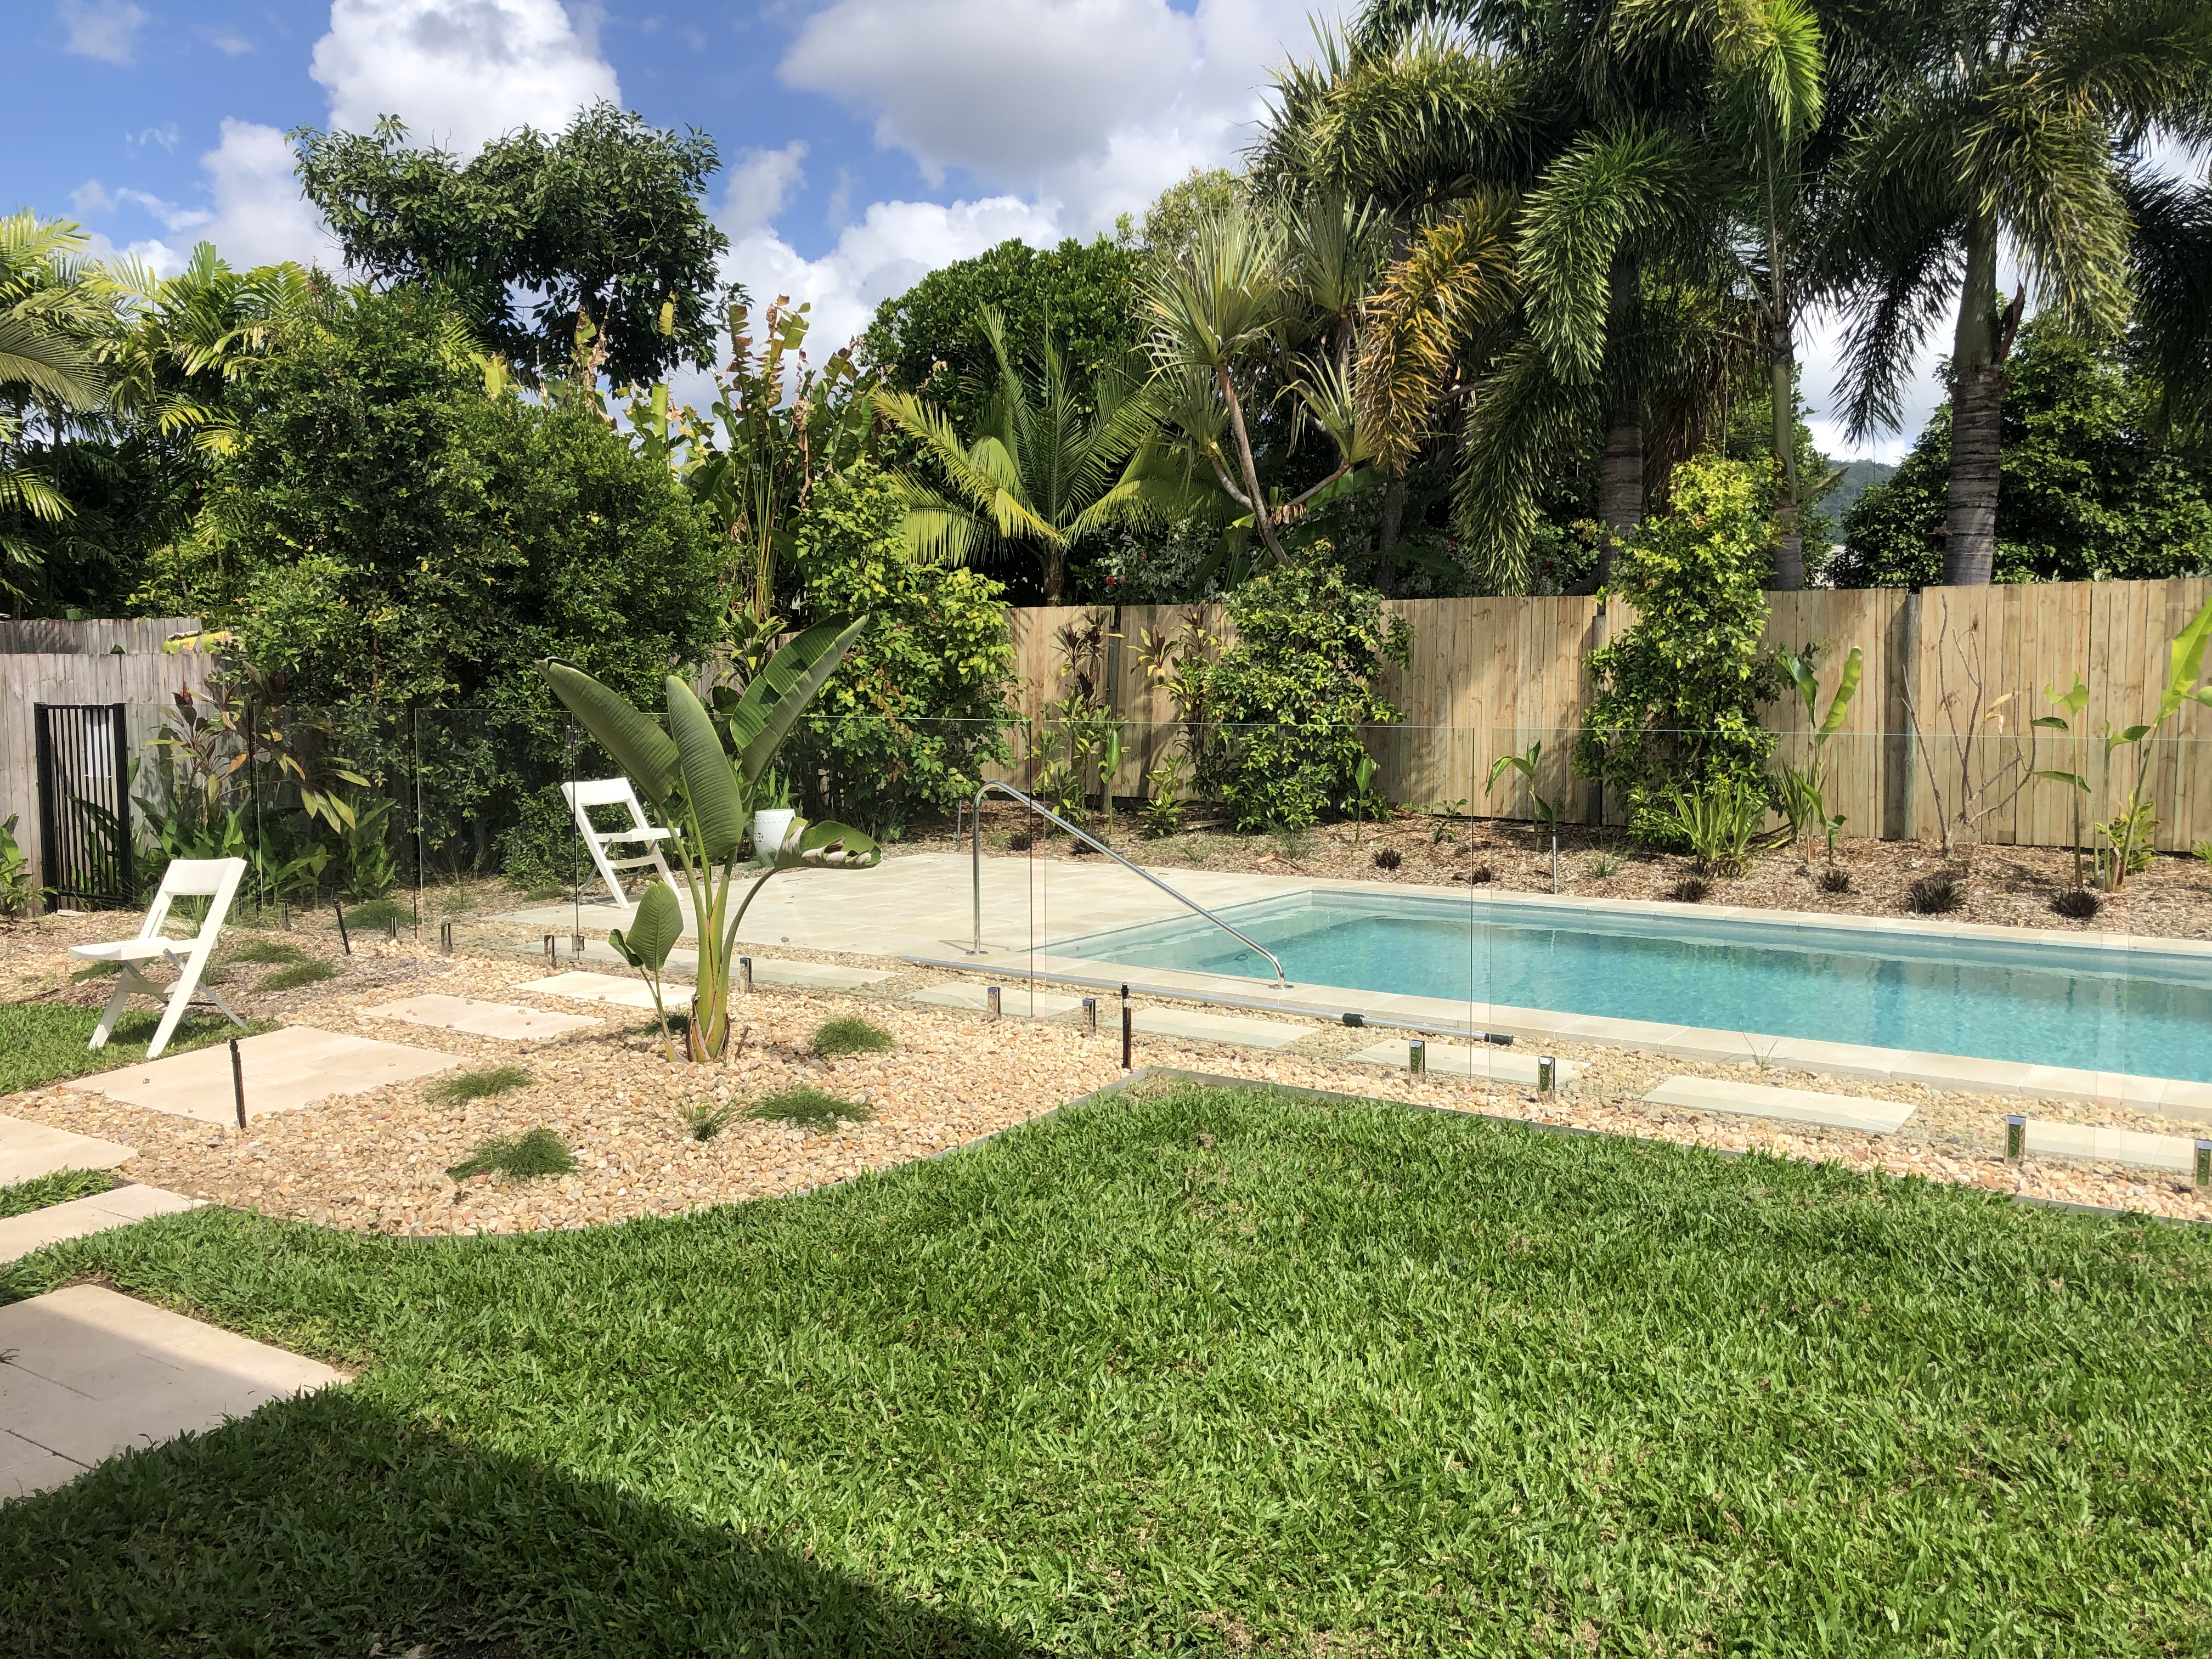 Framless glass pool fencing, renovation, Cairns